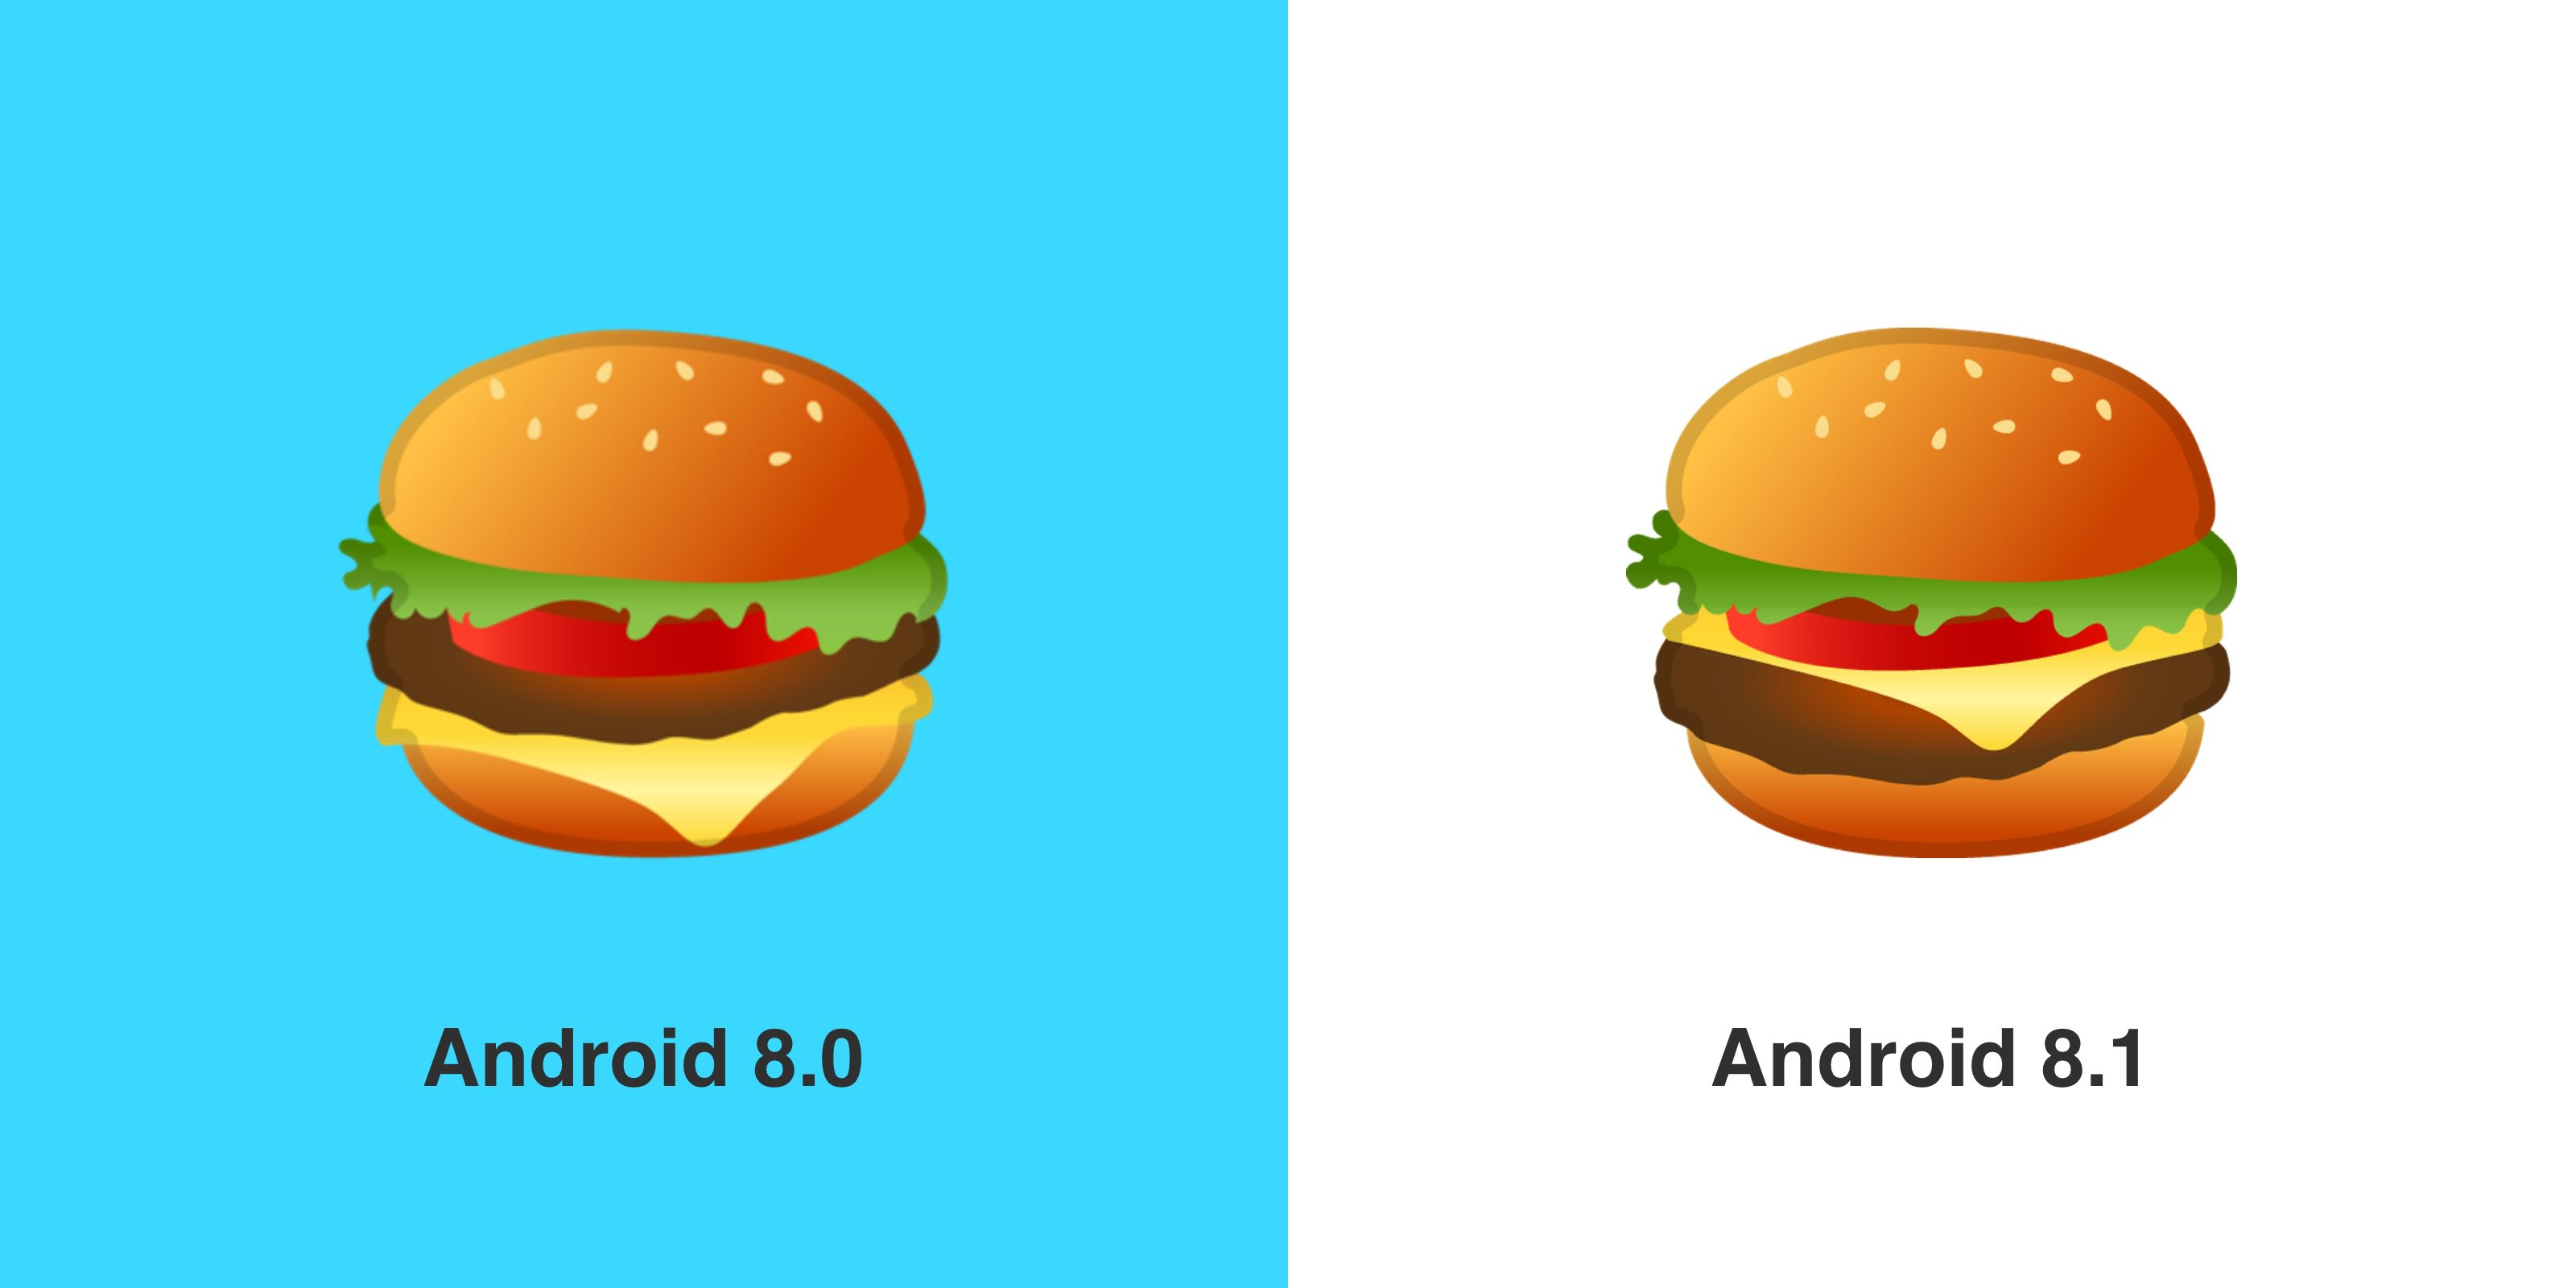 Google finally corrects its burger emoji